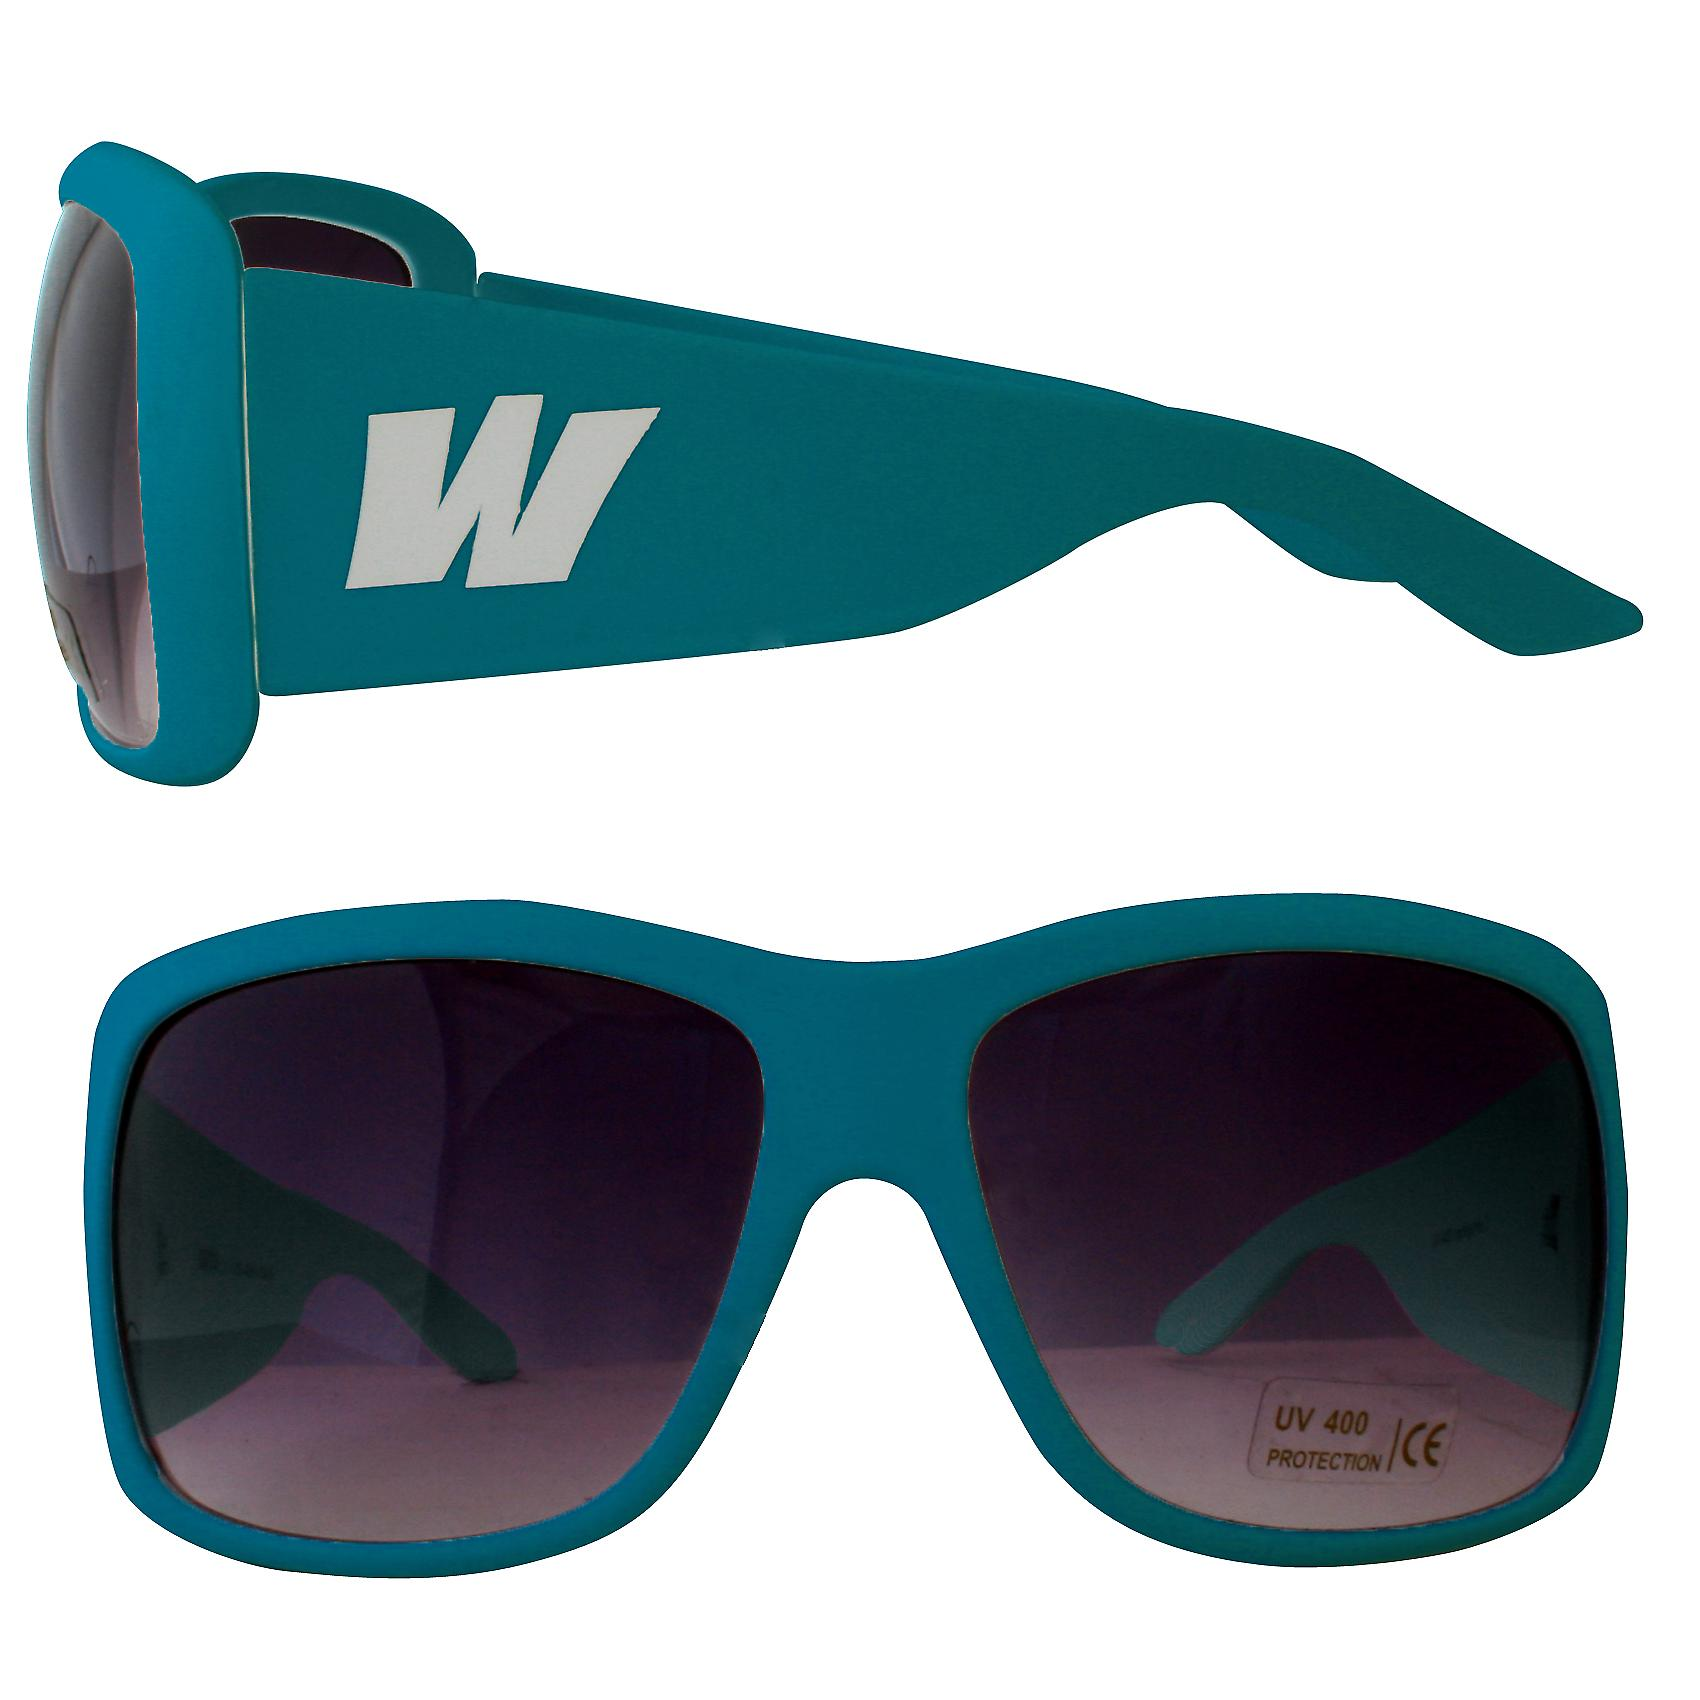 Waooh - Sunglasses 910 - Design W - Mount Color - Protection UV400 Category 3 - Sunglasses